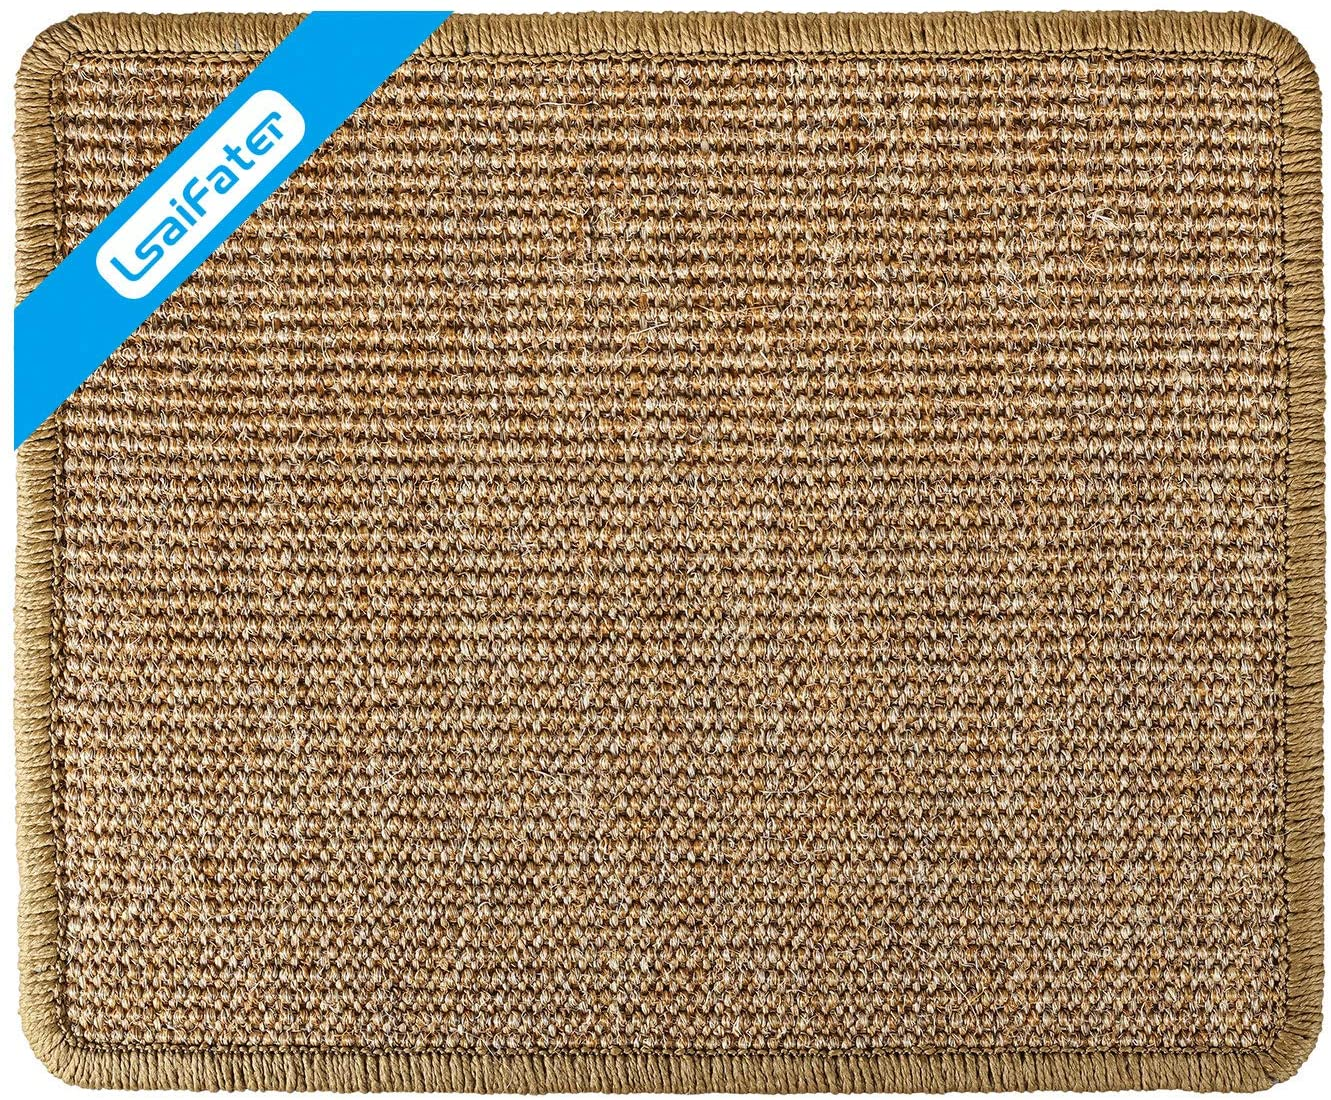 LSAIFATER Cat Scratching Mat, Natural Sisal Mat, Protect Carpets and Sofas (13x15¾ inch, Brown)